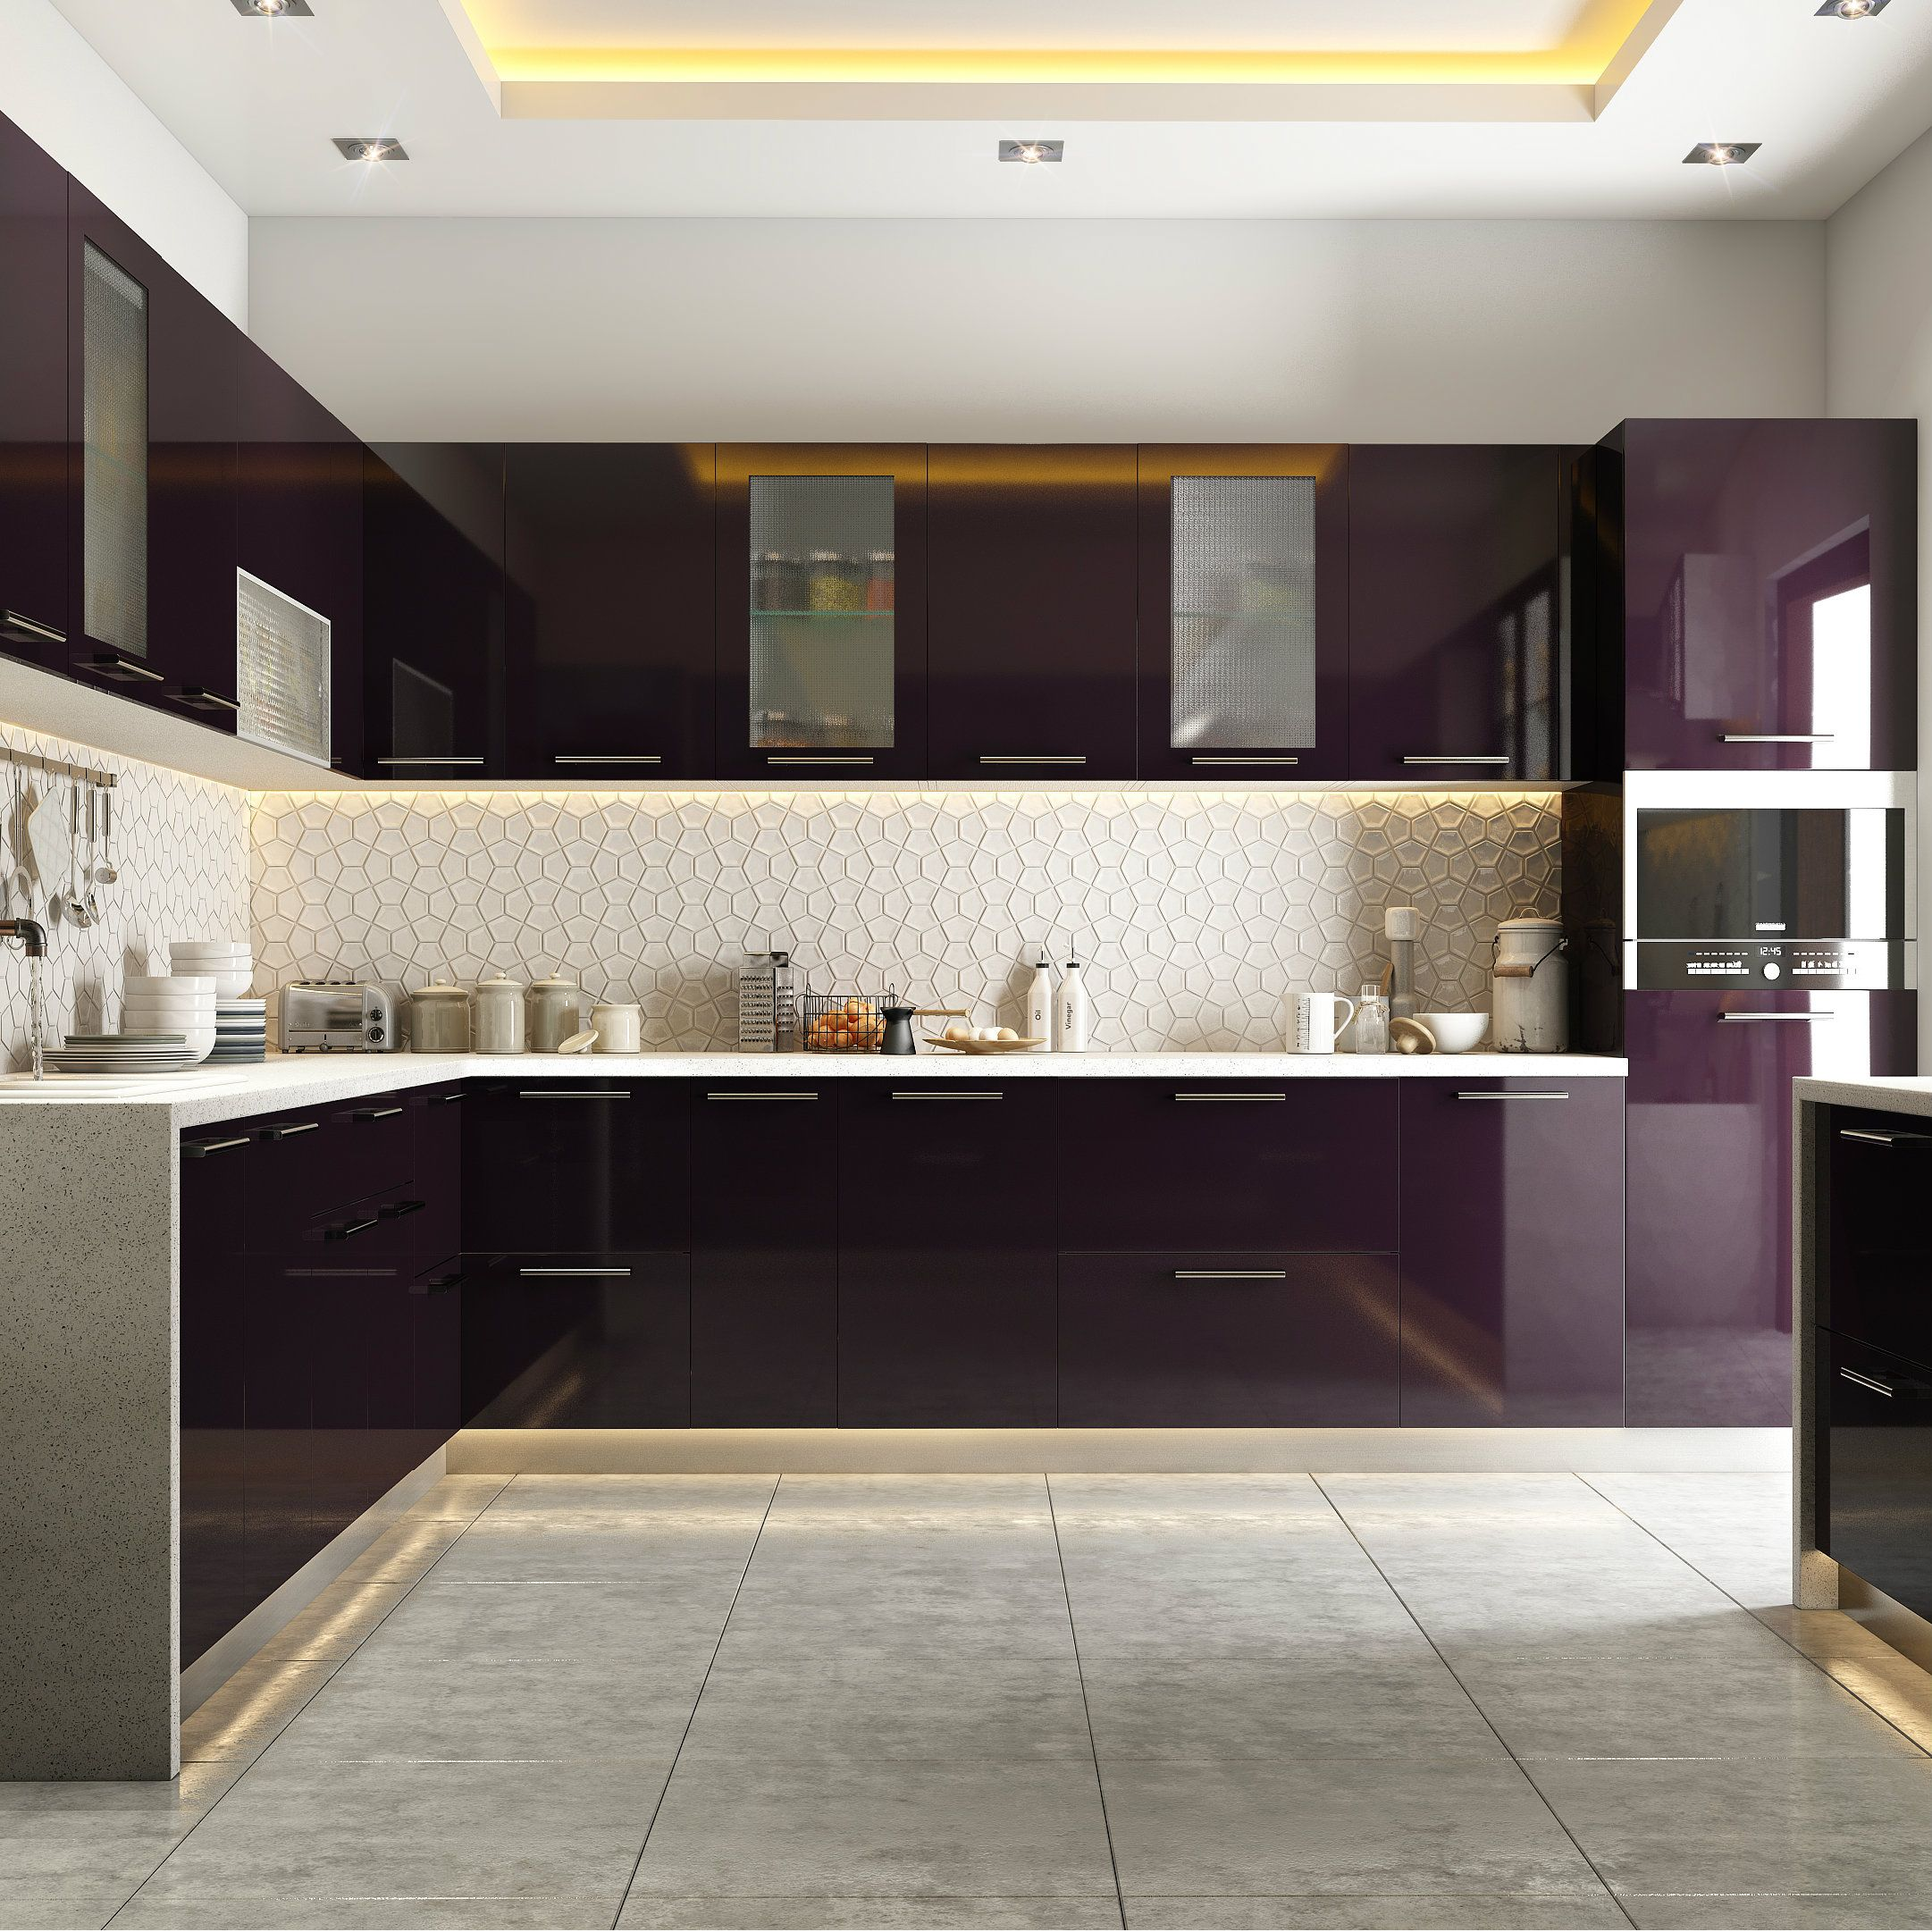 Modular kitchen styled in burgundy hues  Kitchen room design